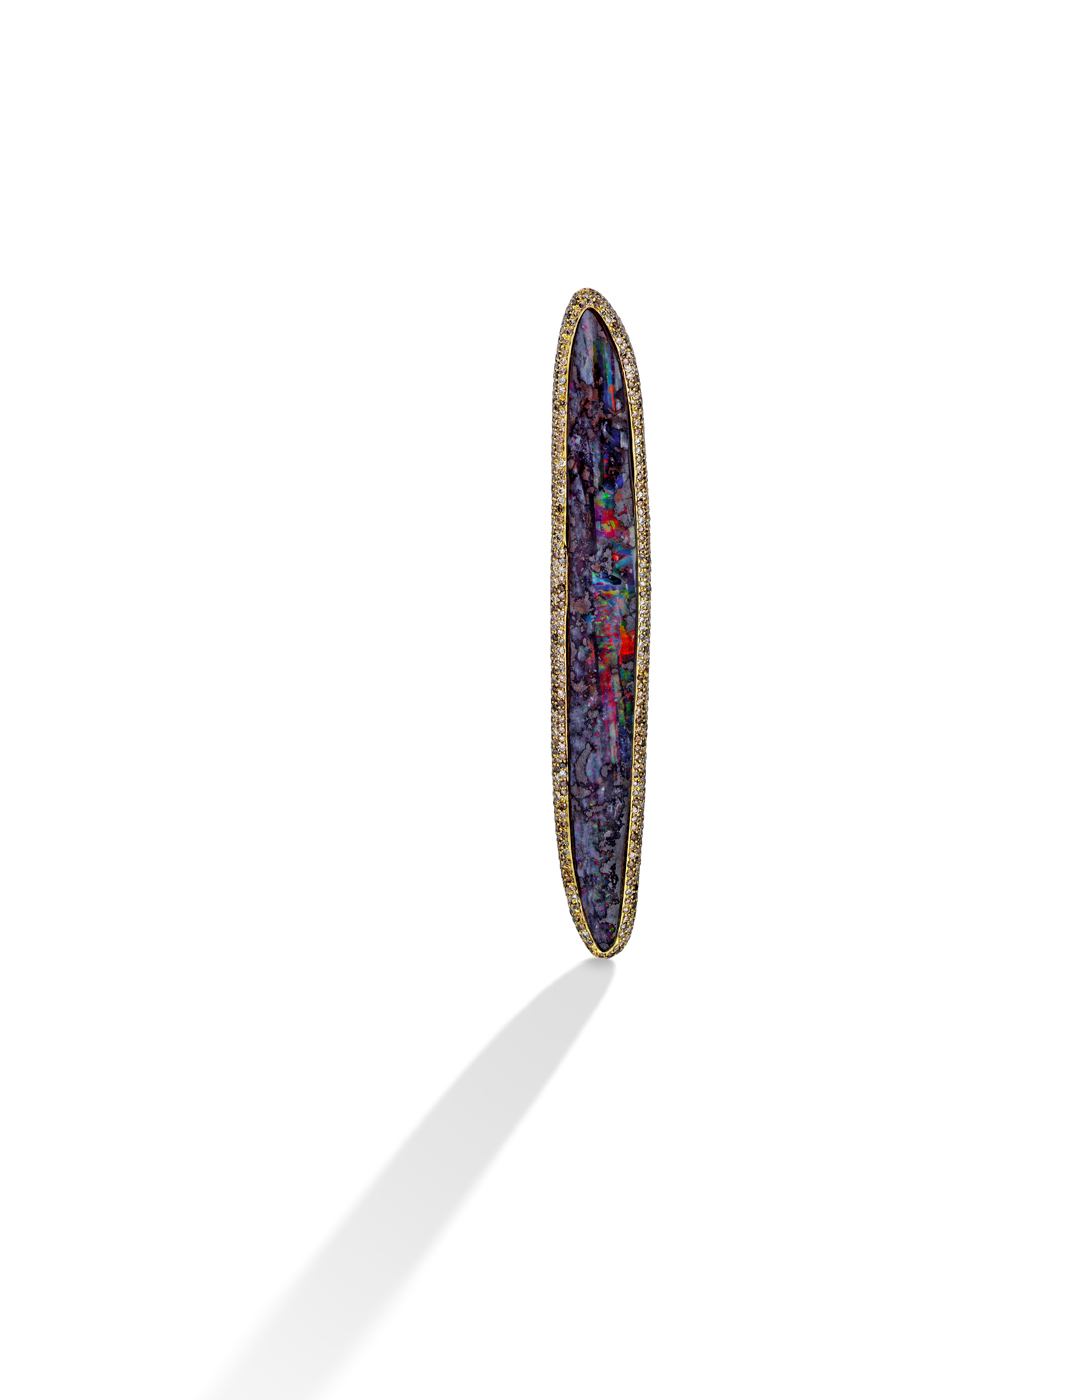 mish_jewelry_products_Kimering-Opal-Brooch-1